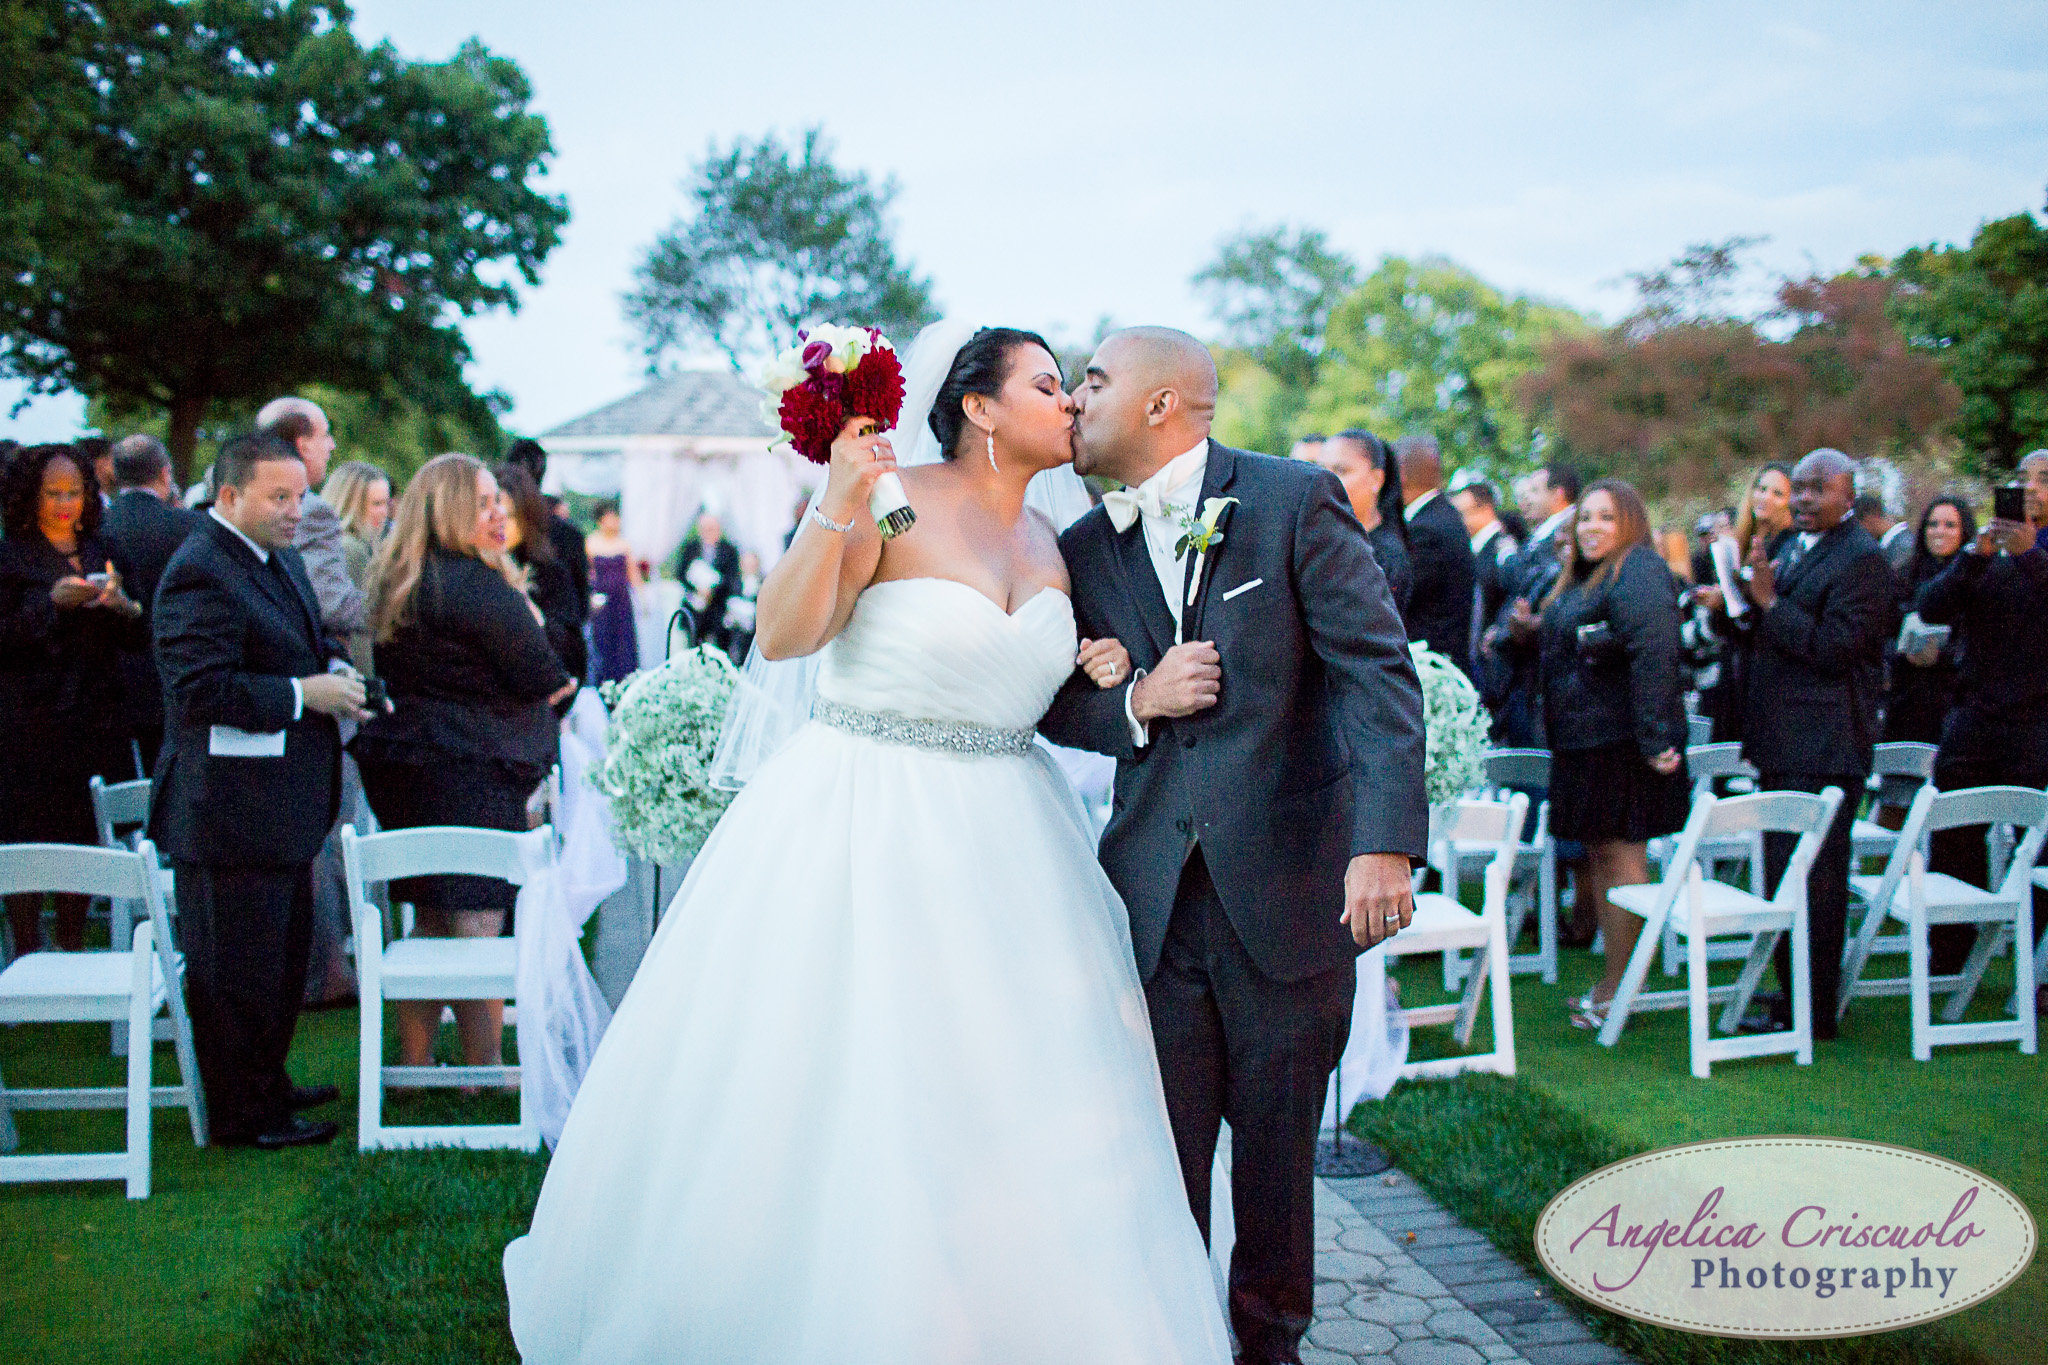 View More: http://angelicacriscuolophotography.pass.us/margiejorge